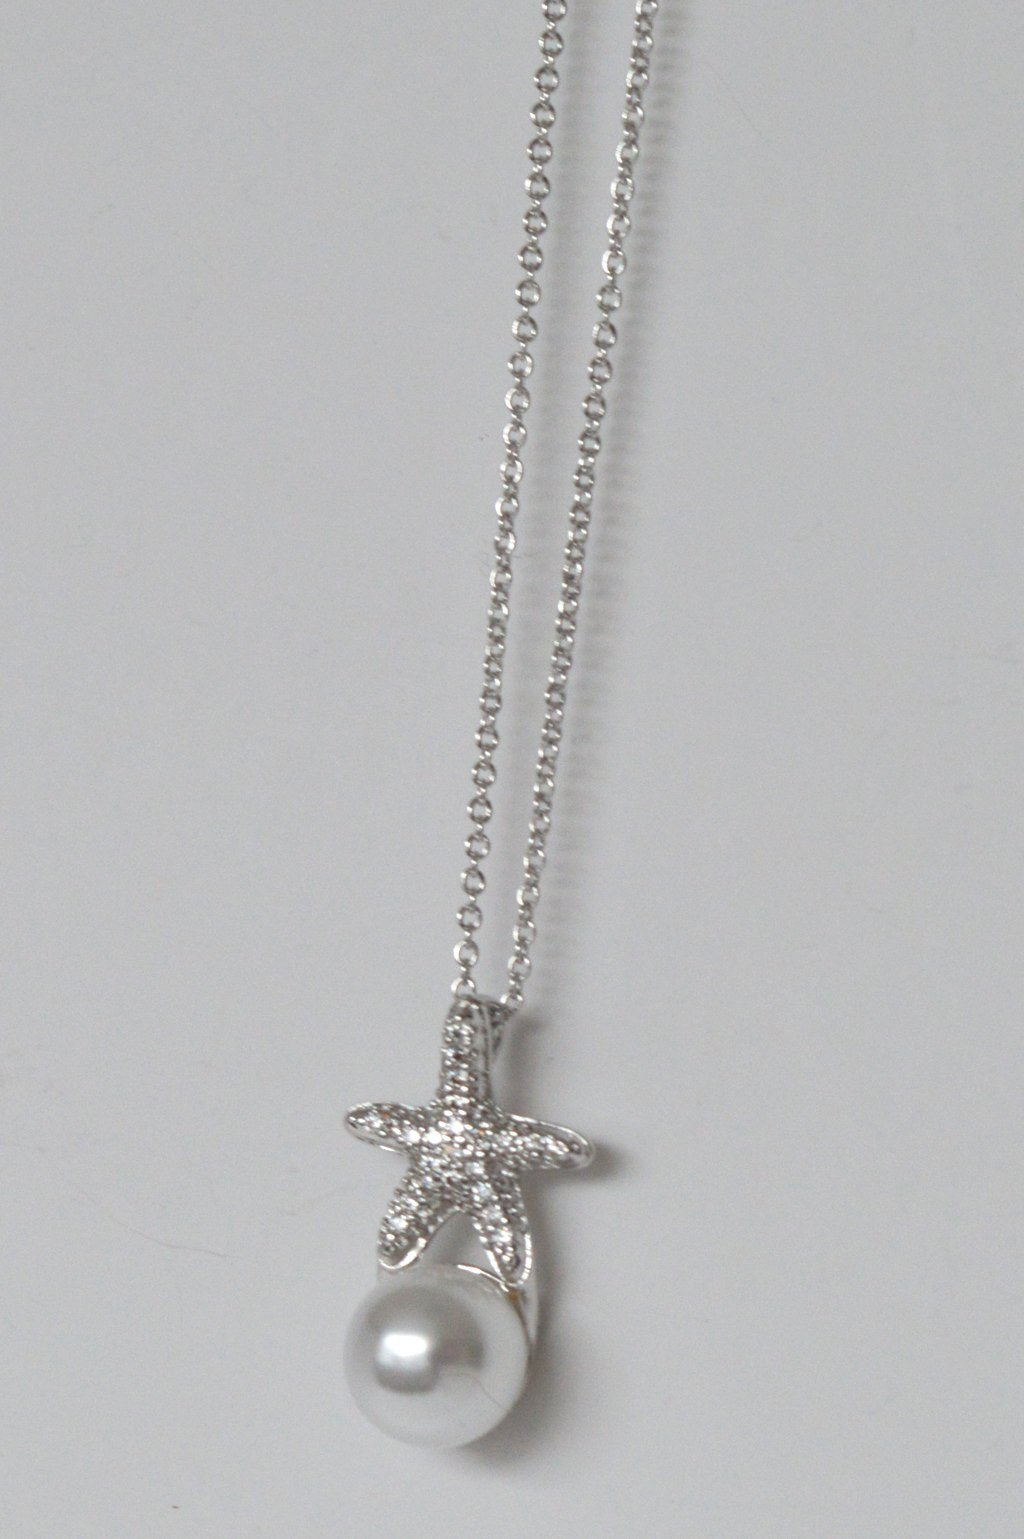 PEARL & STARFISH NECKLACE